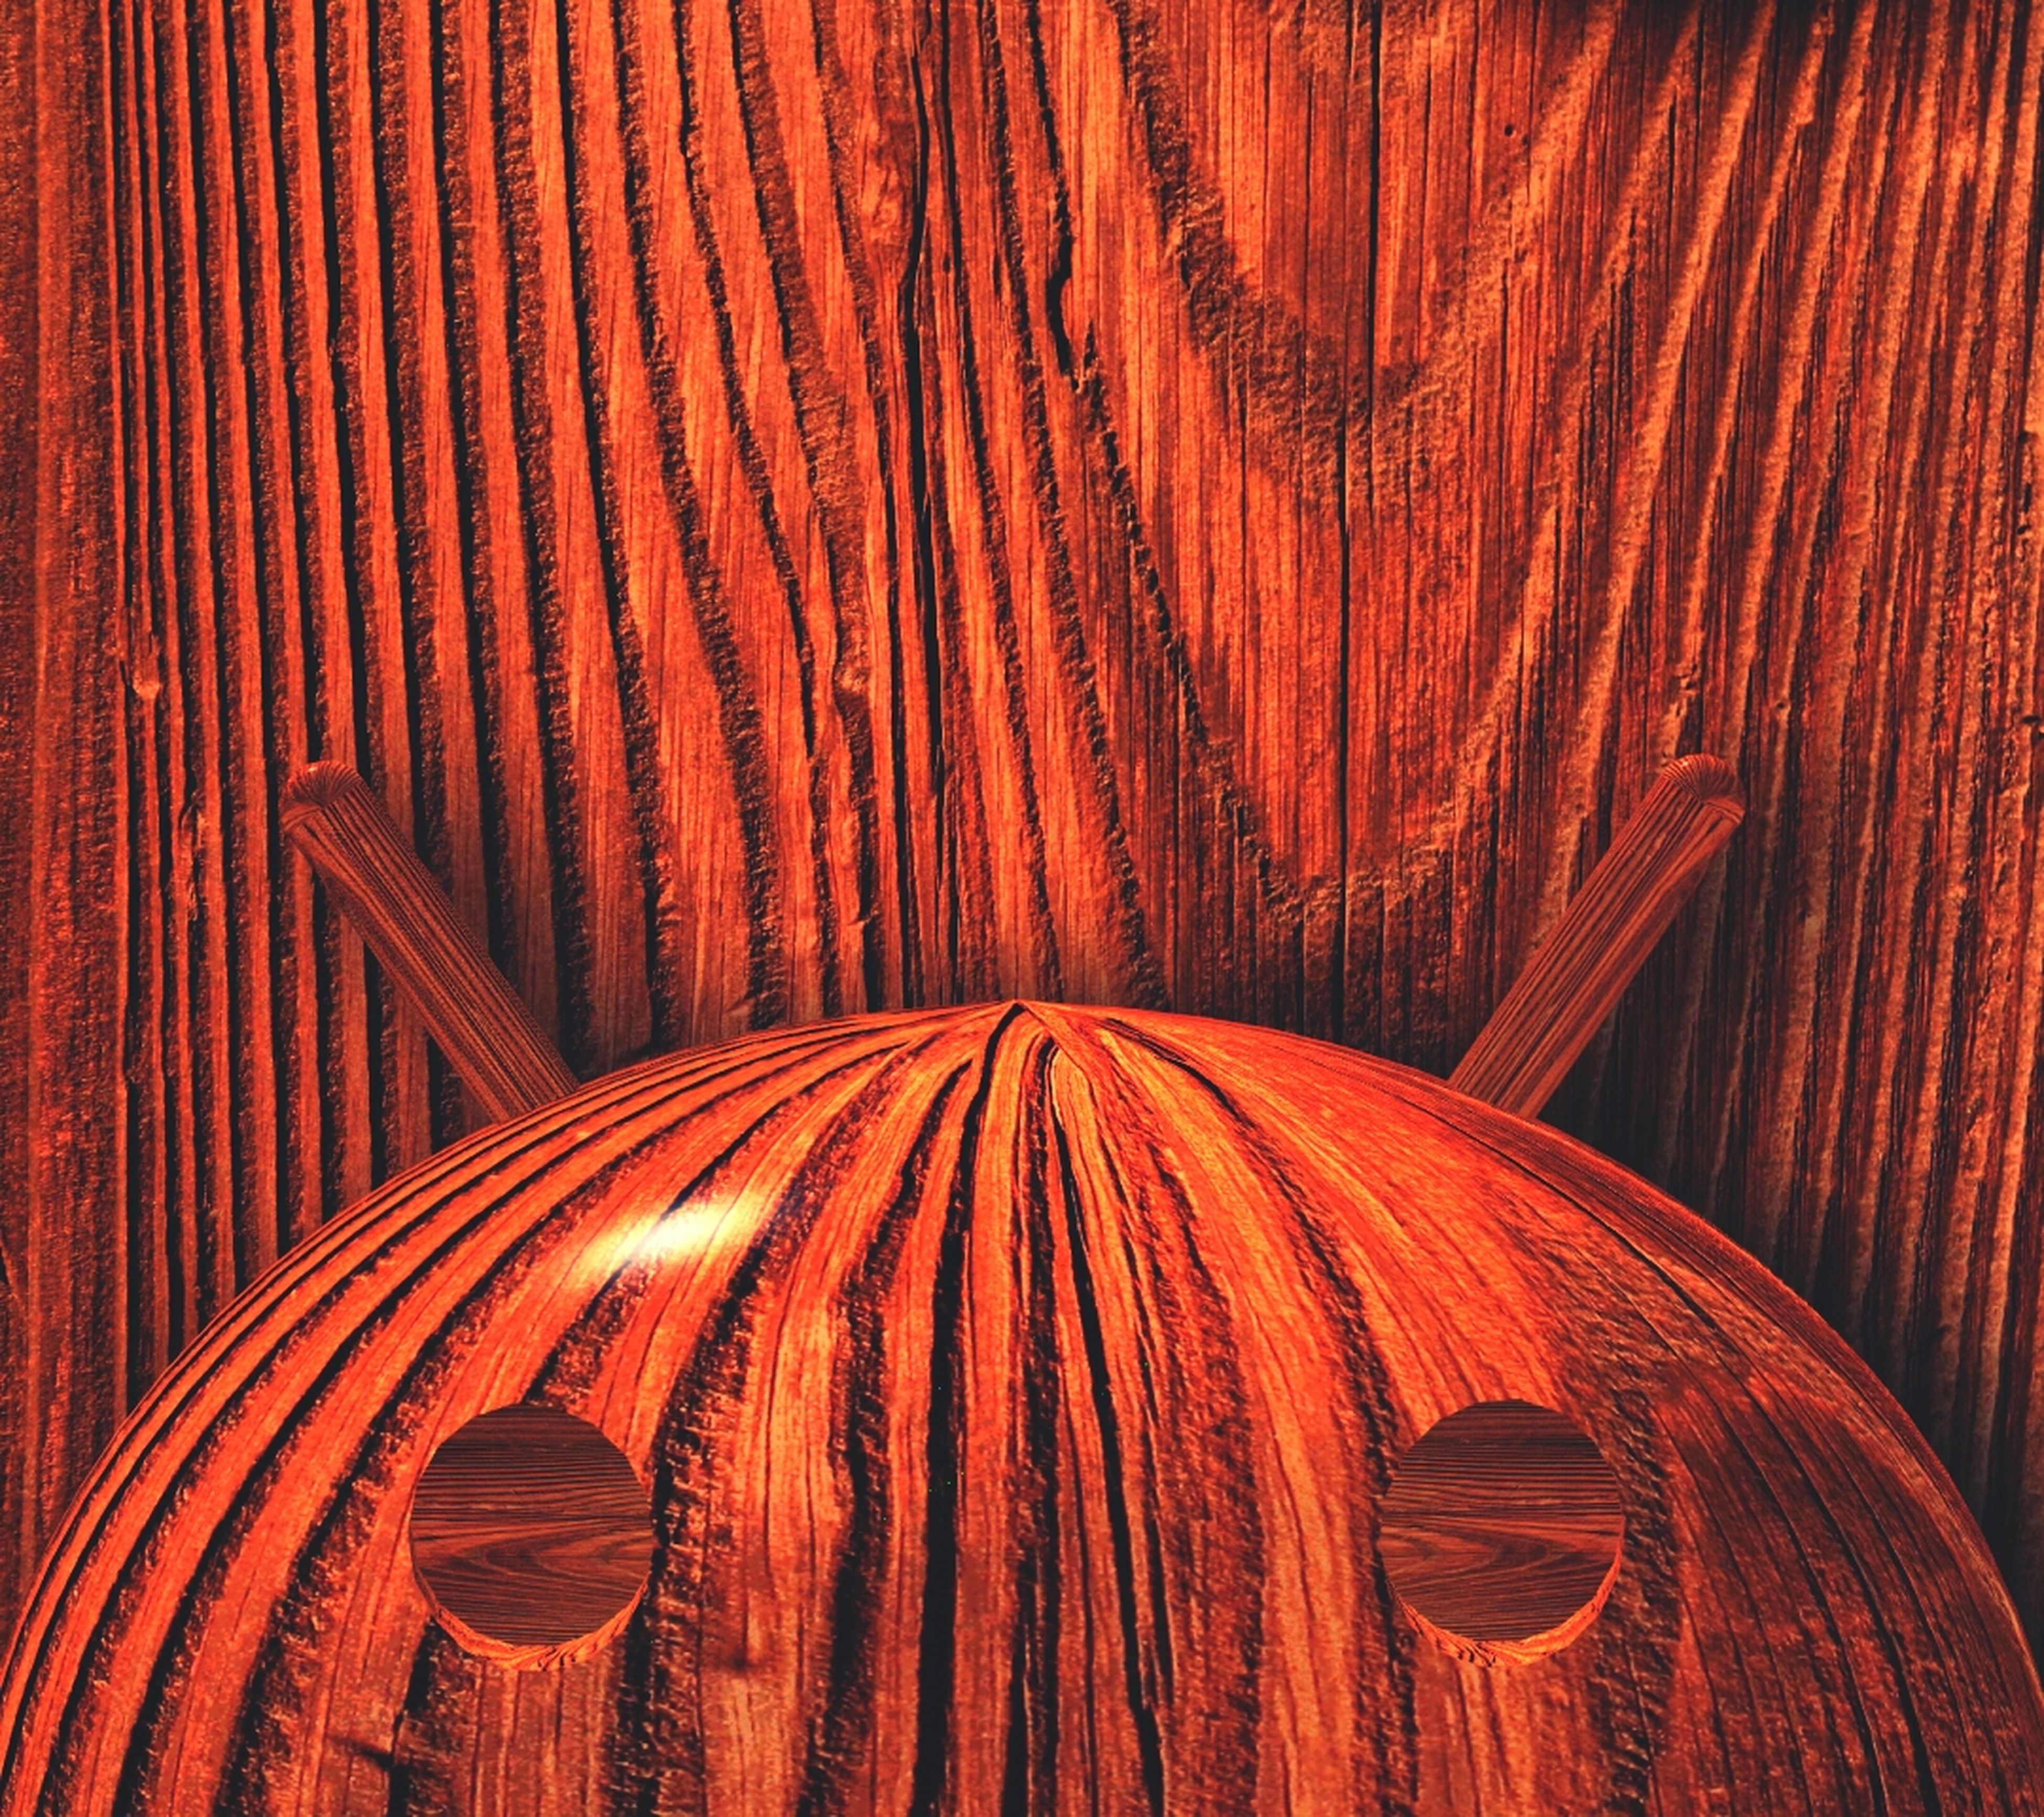 full frame, pattern, backgrounds, wood - material, indoors, textured, art and craft, close-up, design, brown, orange color, art, red, creativity, wood, wooden, no people, part of, wall - building feature, detail